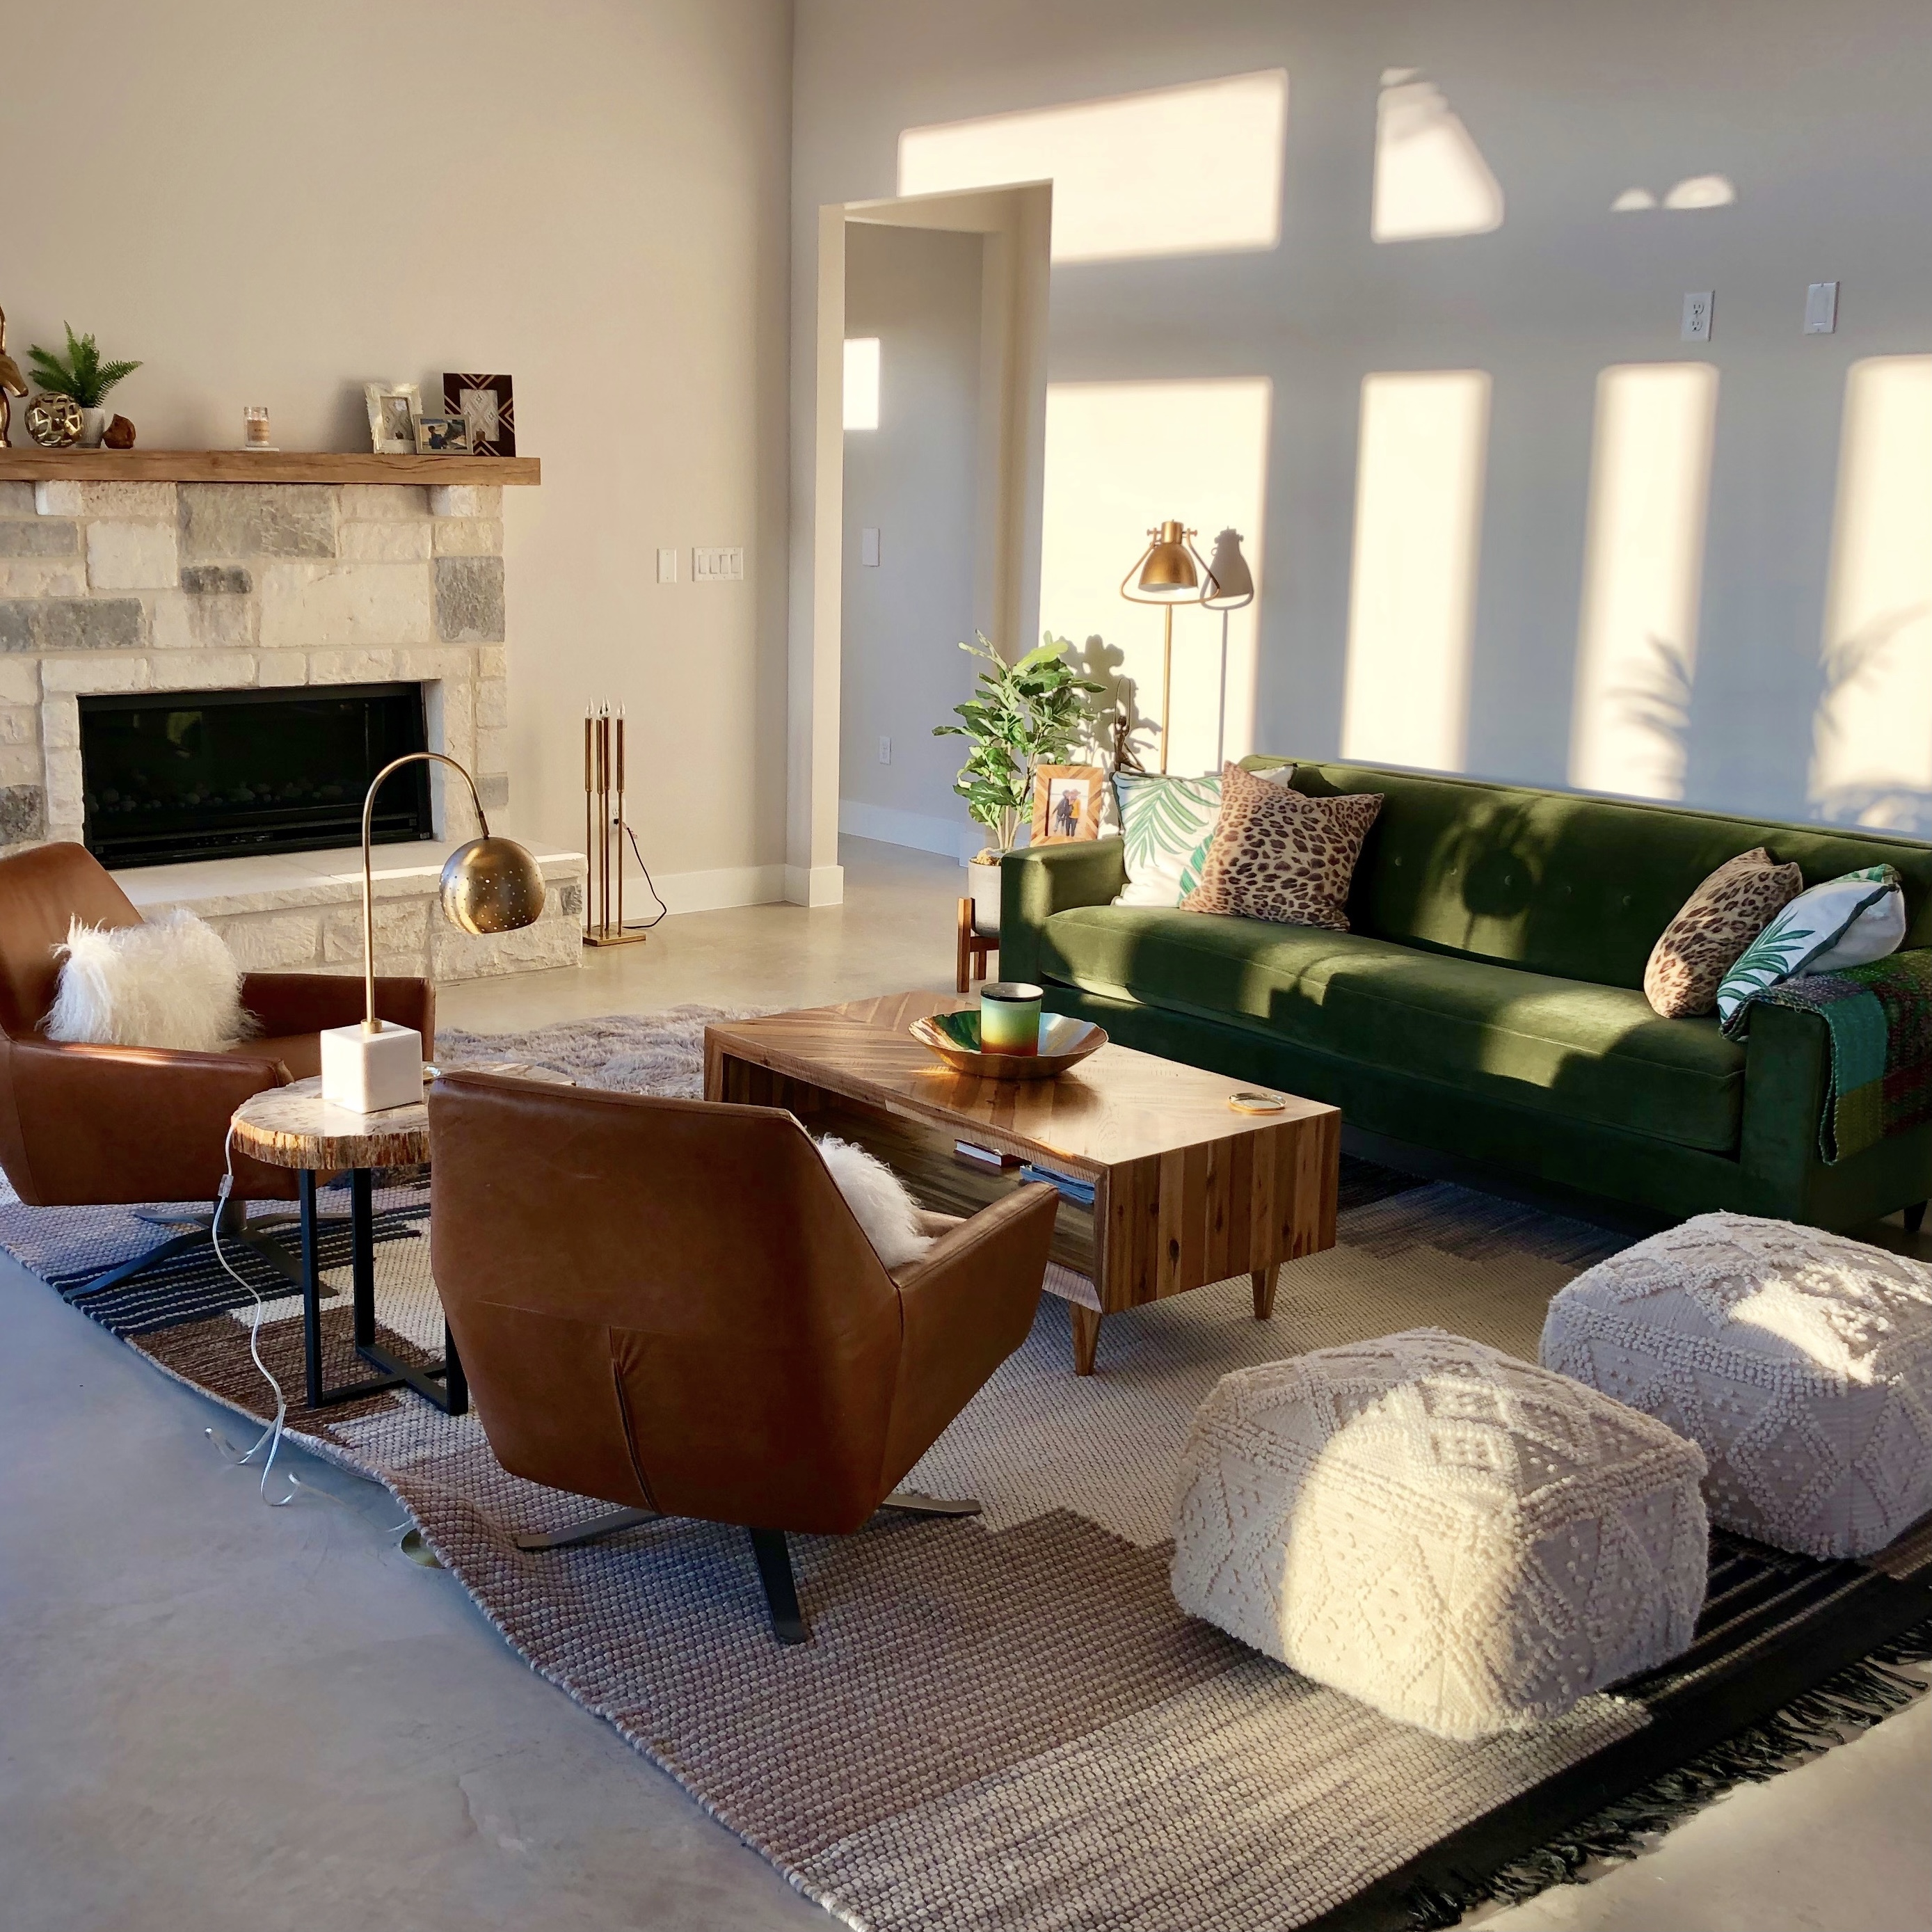 Living room with sunlight coming in through window hitting wall on right hand side. Chimney on the left hand side with white and grey stone and wood decor on top. Green sofa and brown chair accents. Wood coffee table in the middle with a grey carpet. Plant next to green sofa.